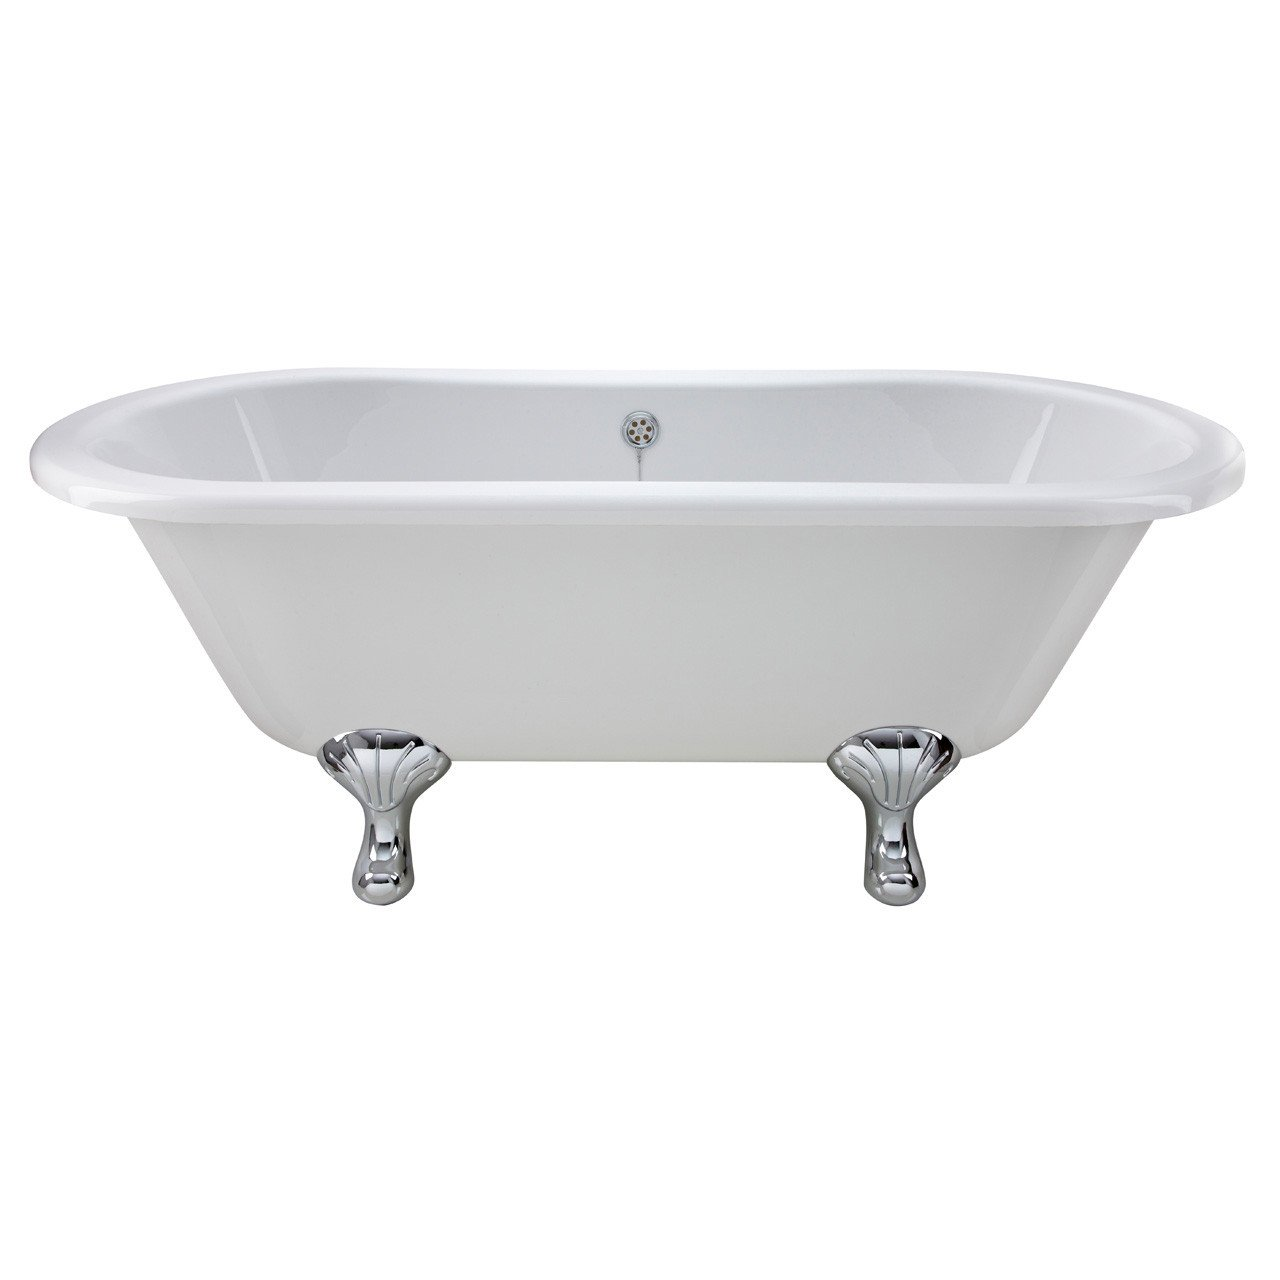 Nuie Kingsbury 1500mm Double Ended Freestanding Bath with Corbel Legs - RL1501T